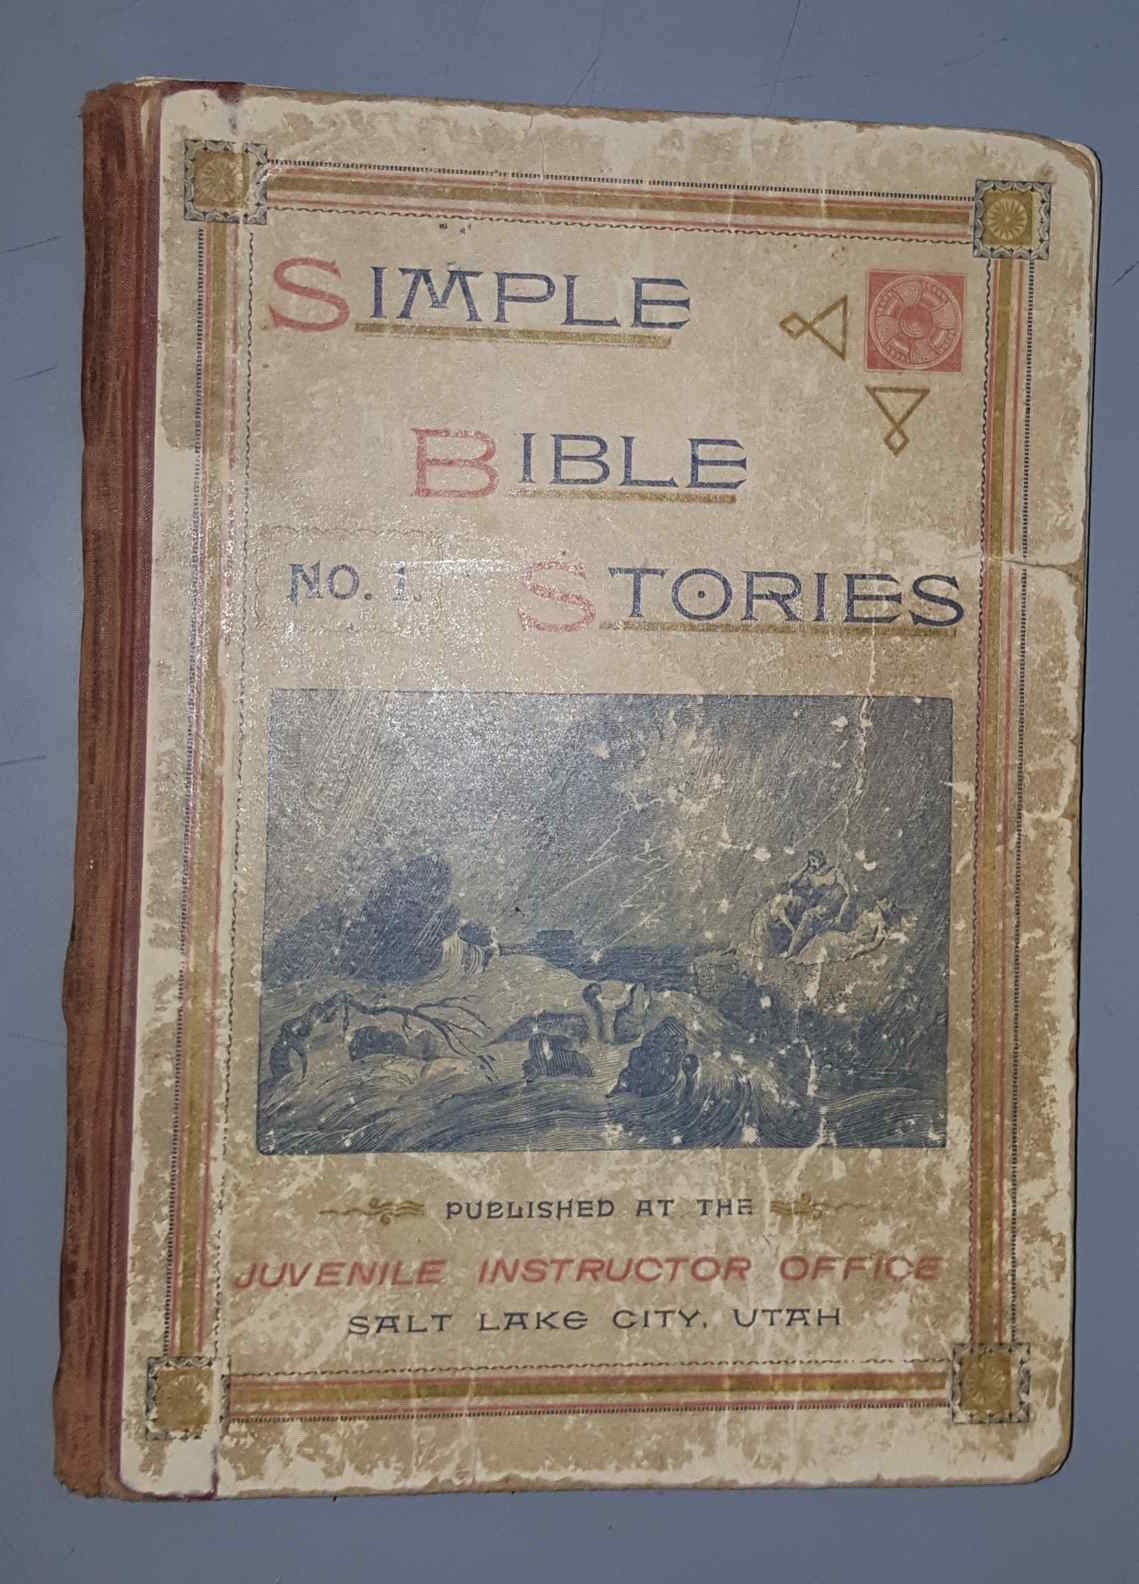 Simple Bible stories;  adapted to the capacity of young children, and designed for use in sabbath schools, Primary Associations, and for home reading